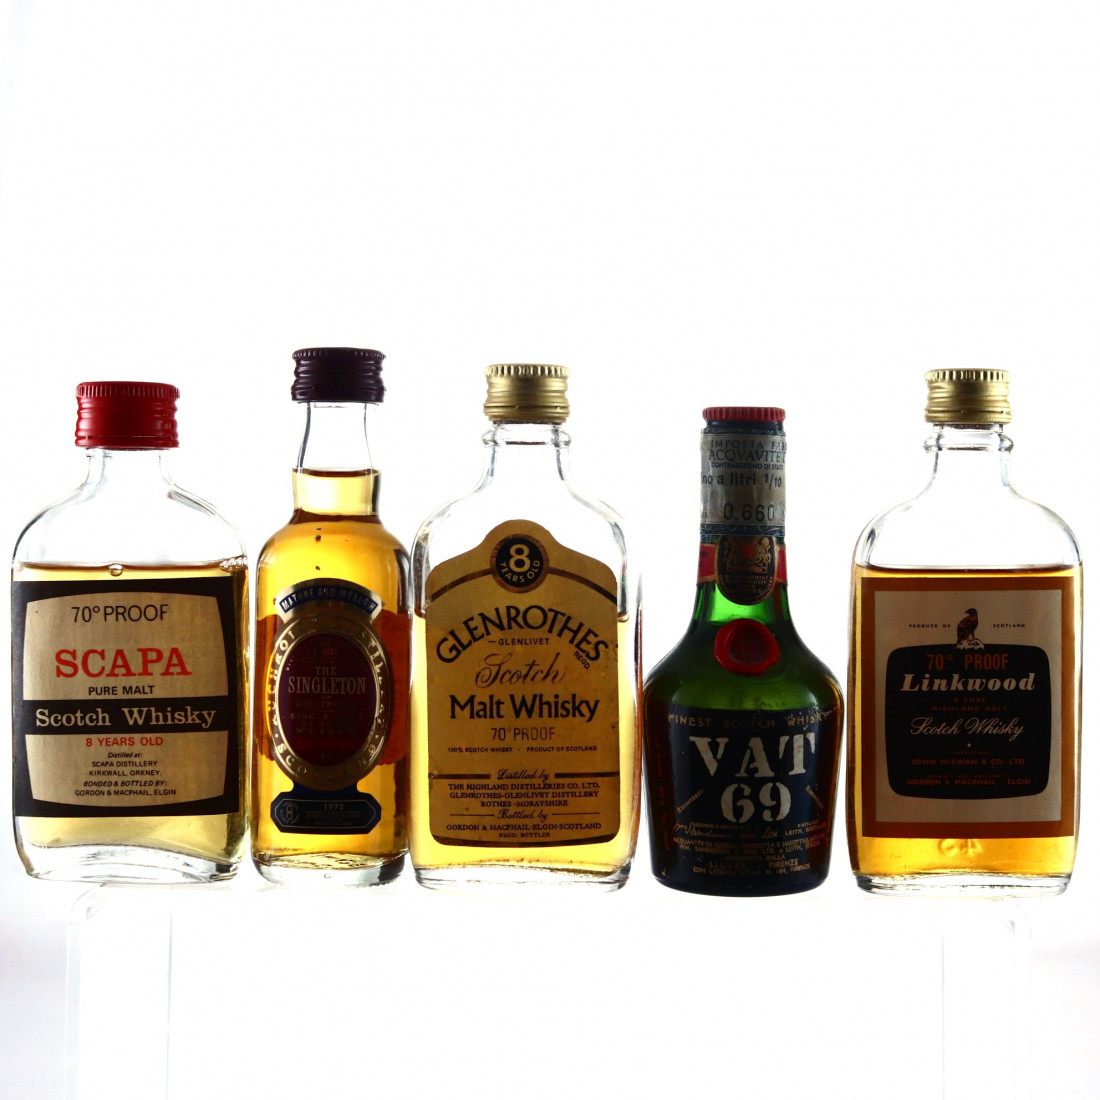 Scotch Whisky Miniatures x 5 / includes Scapa 8 Year Old